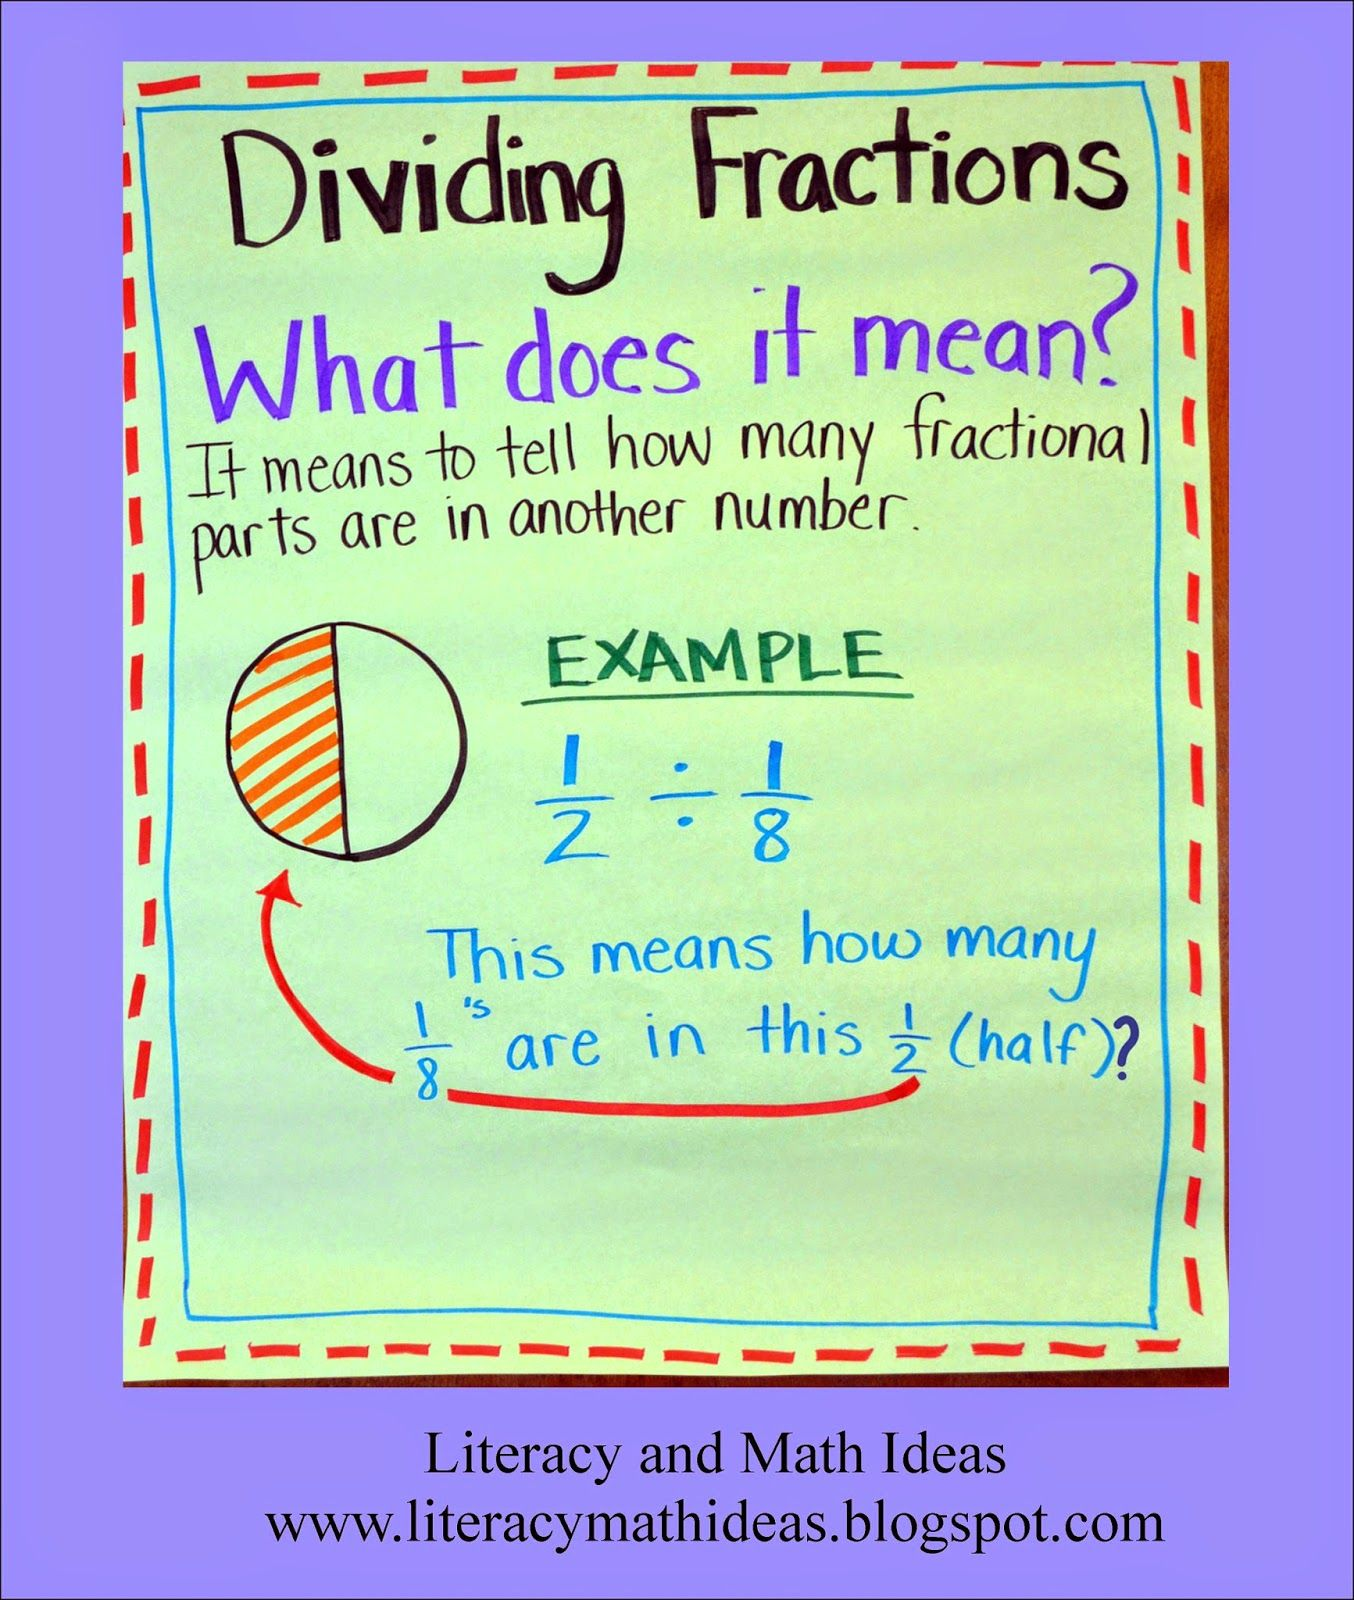 literacy & math ideas: what does it mean to divide fractions